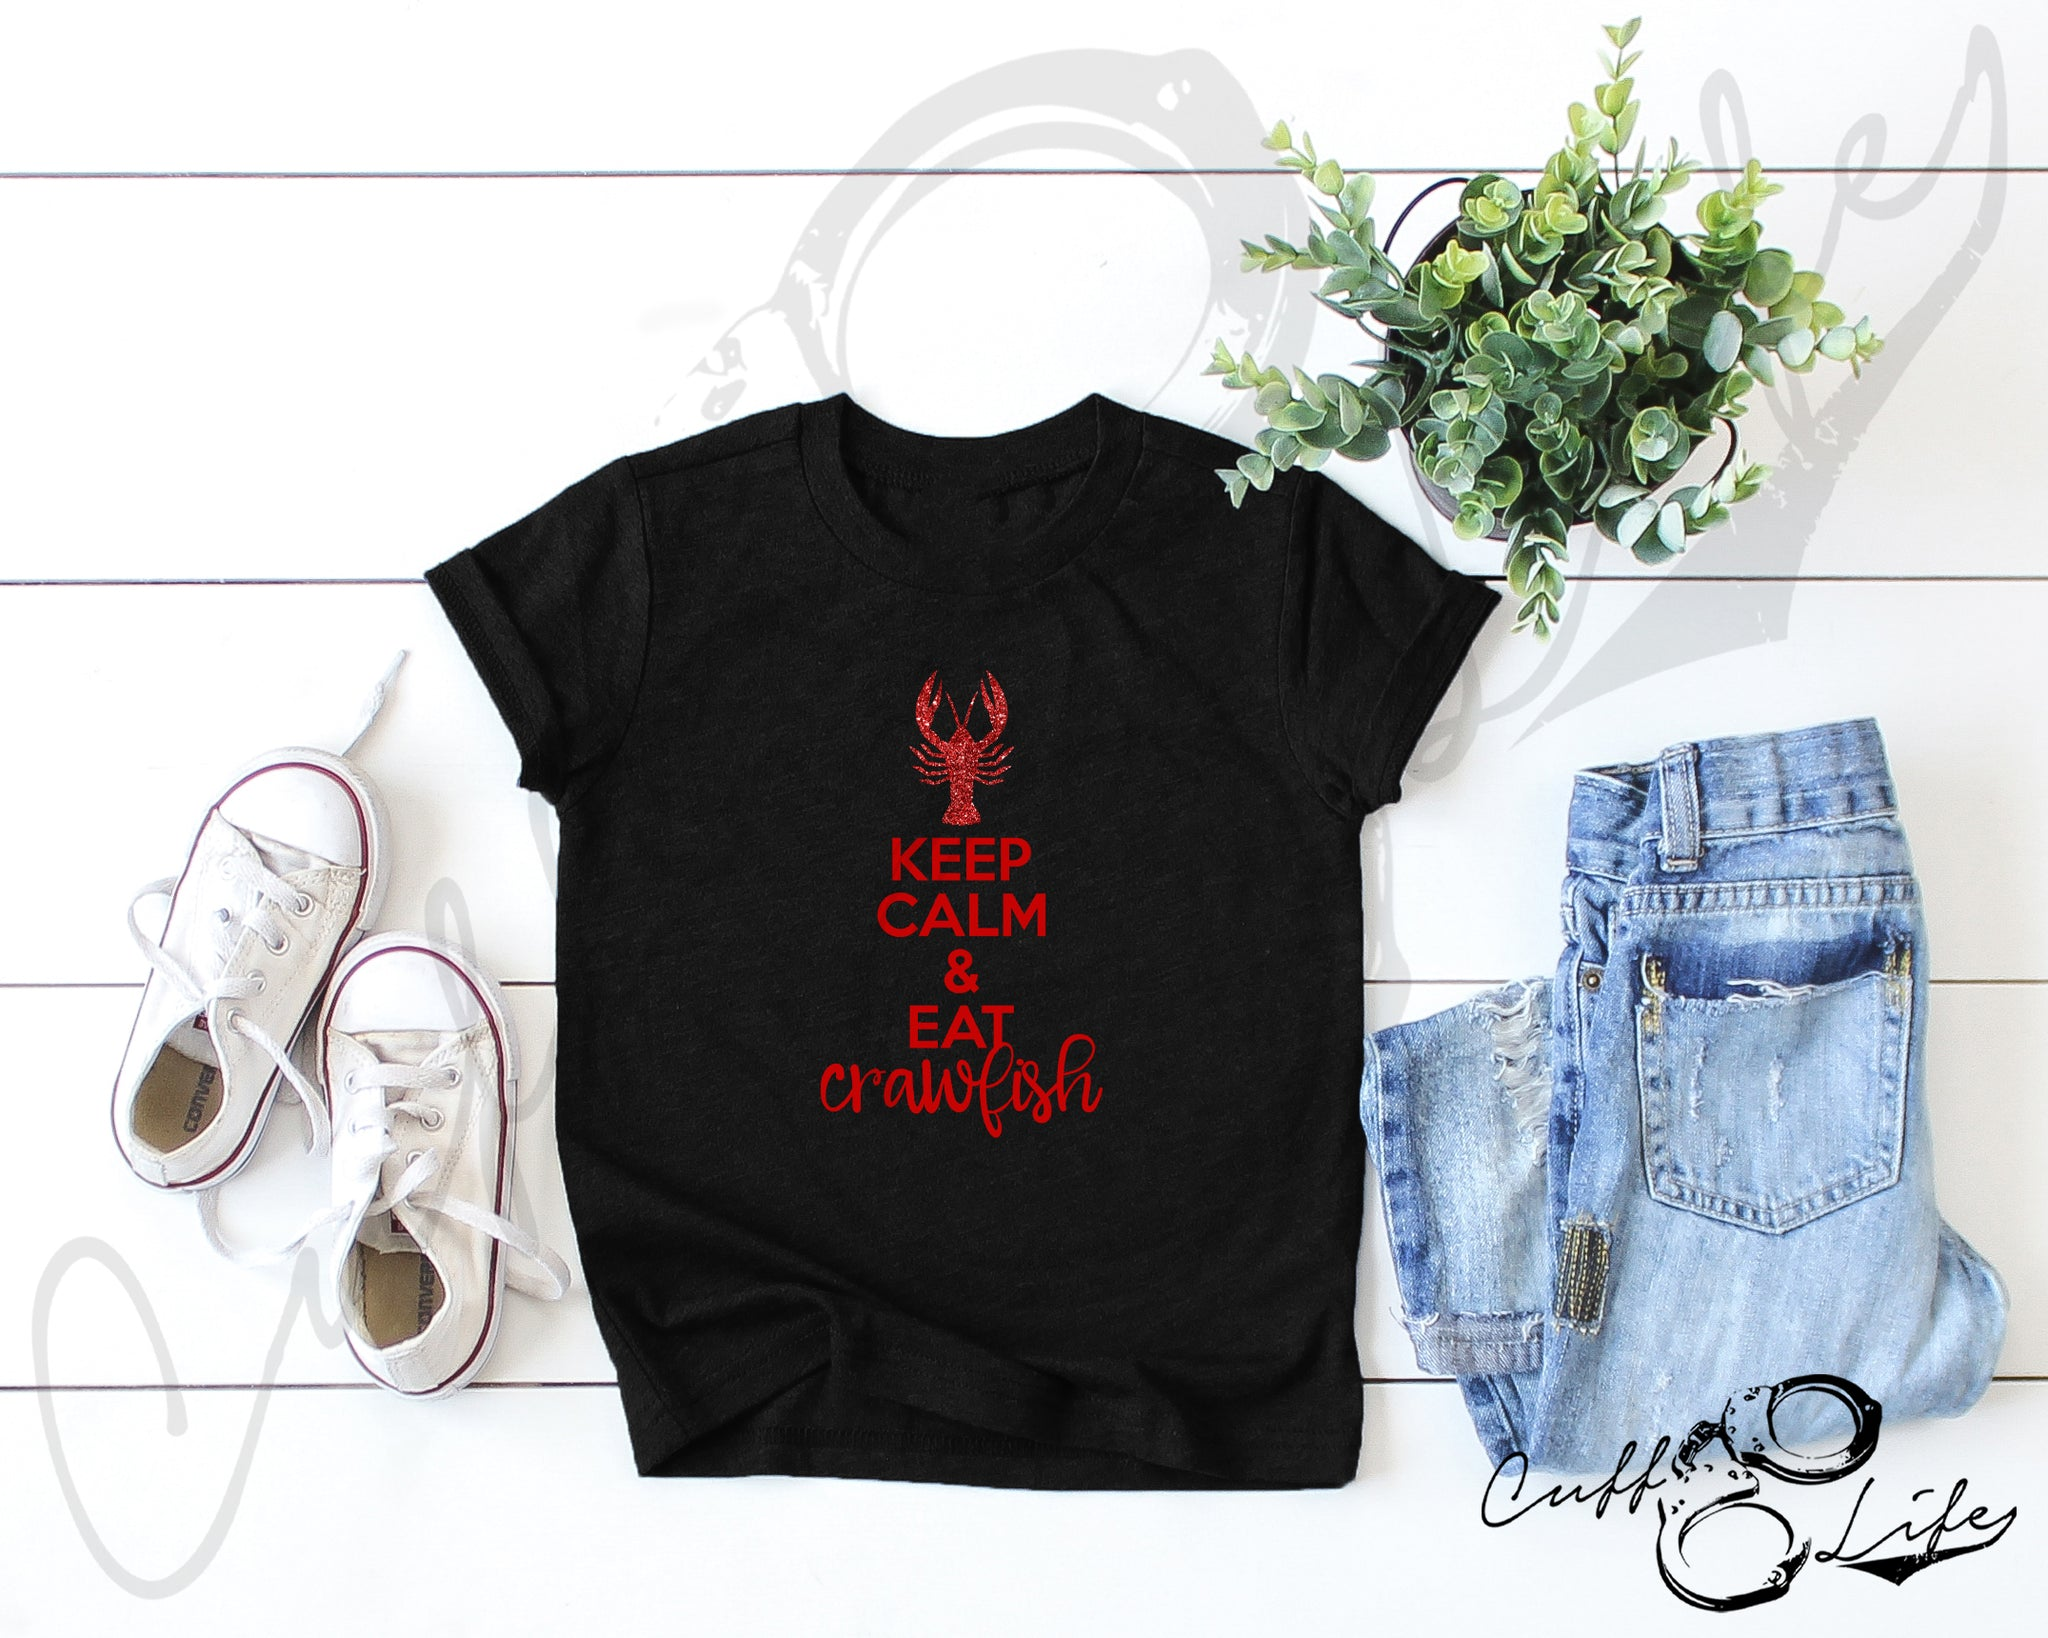 Keep Calm & Eat Crawfish - Toddler/Youth T-Shirt